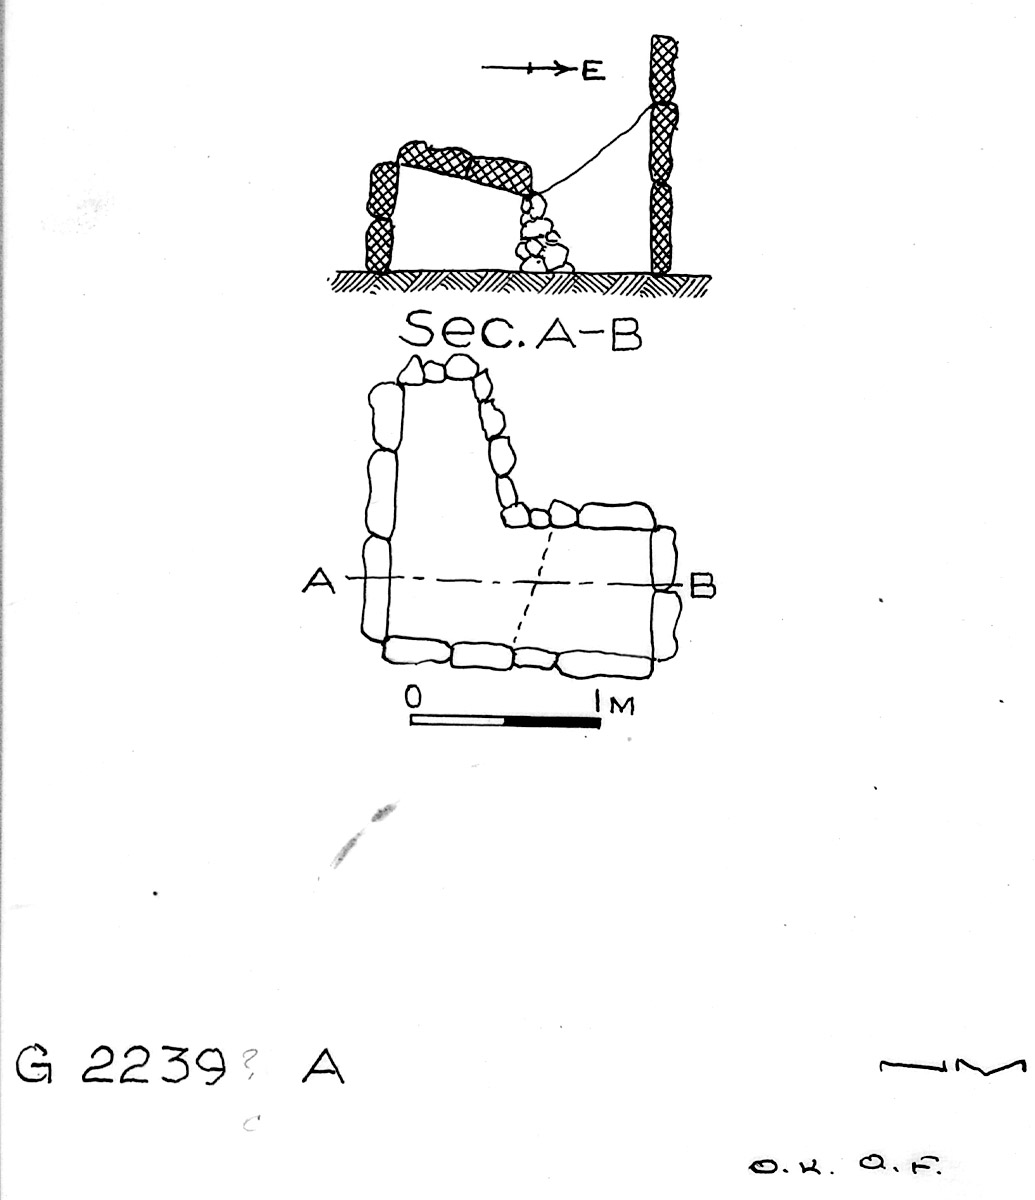 Maps and plans: G 2239c, Shaft A